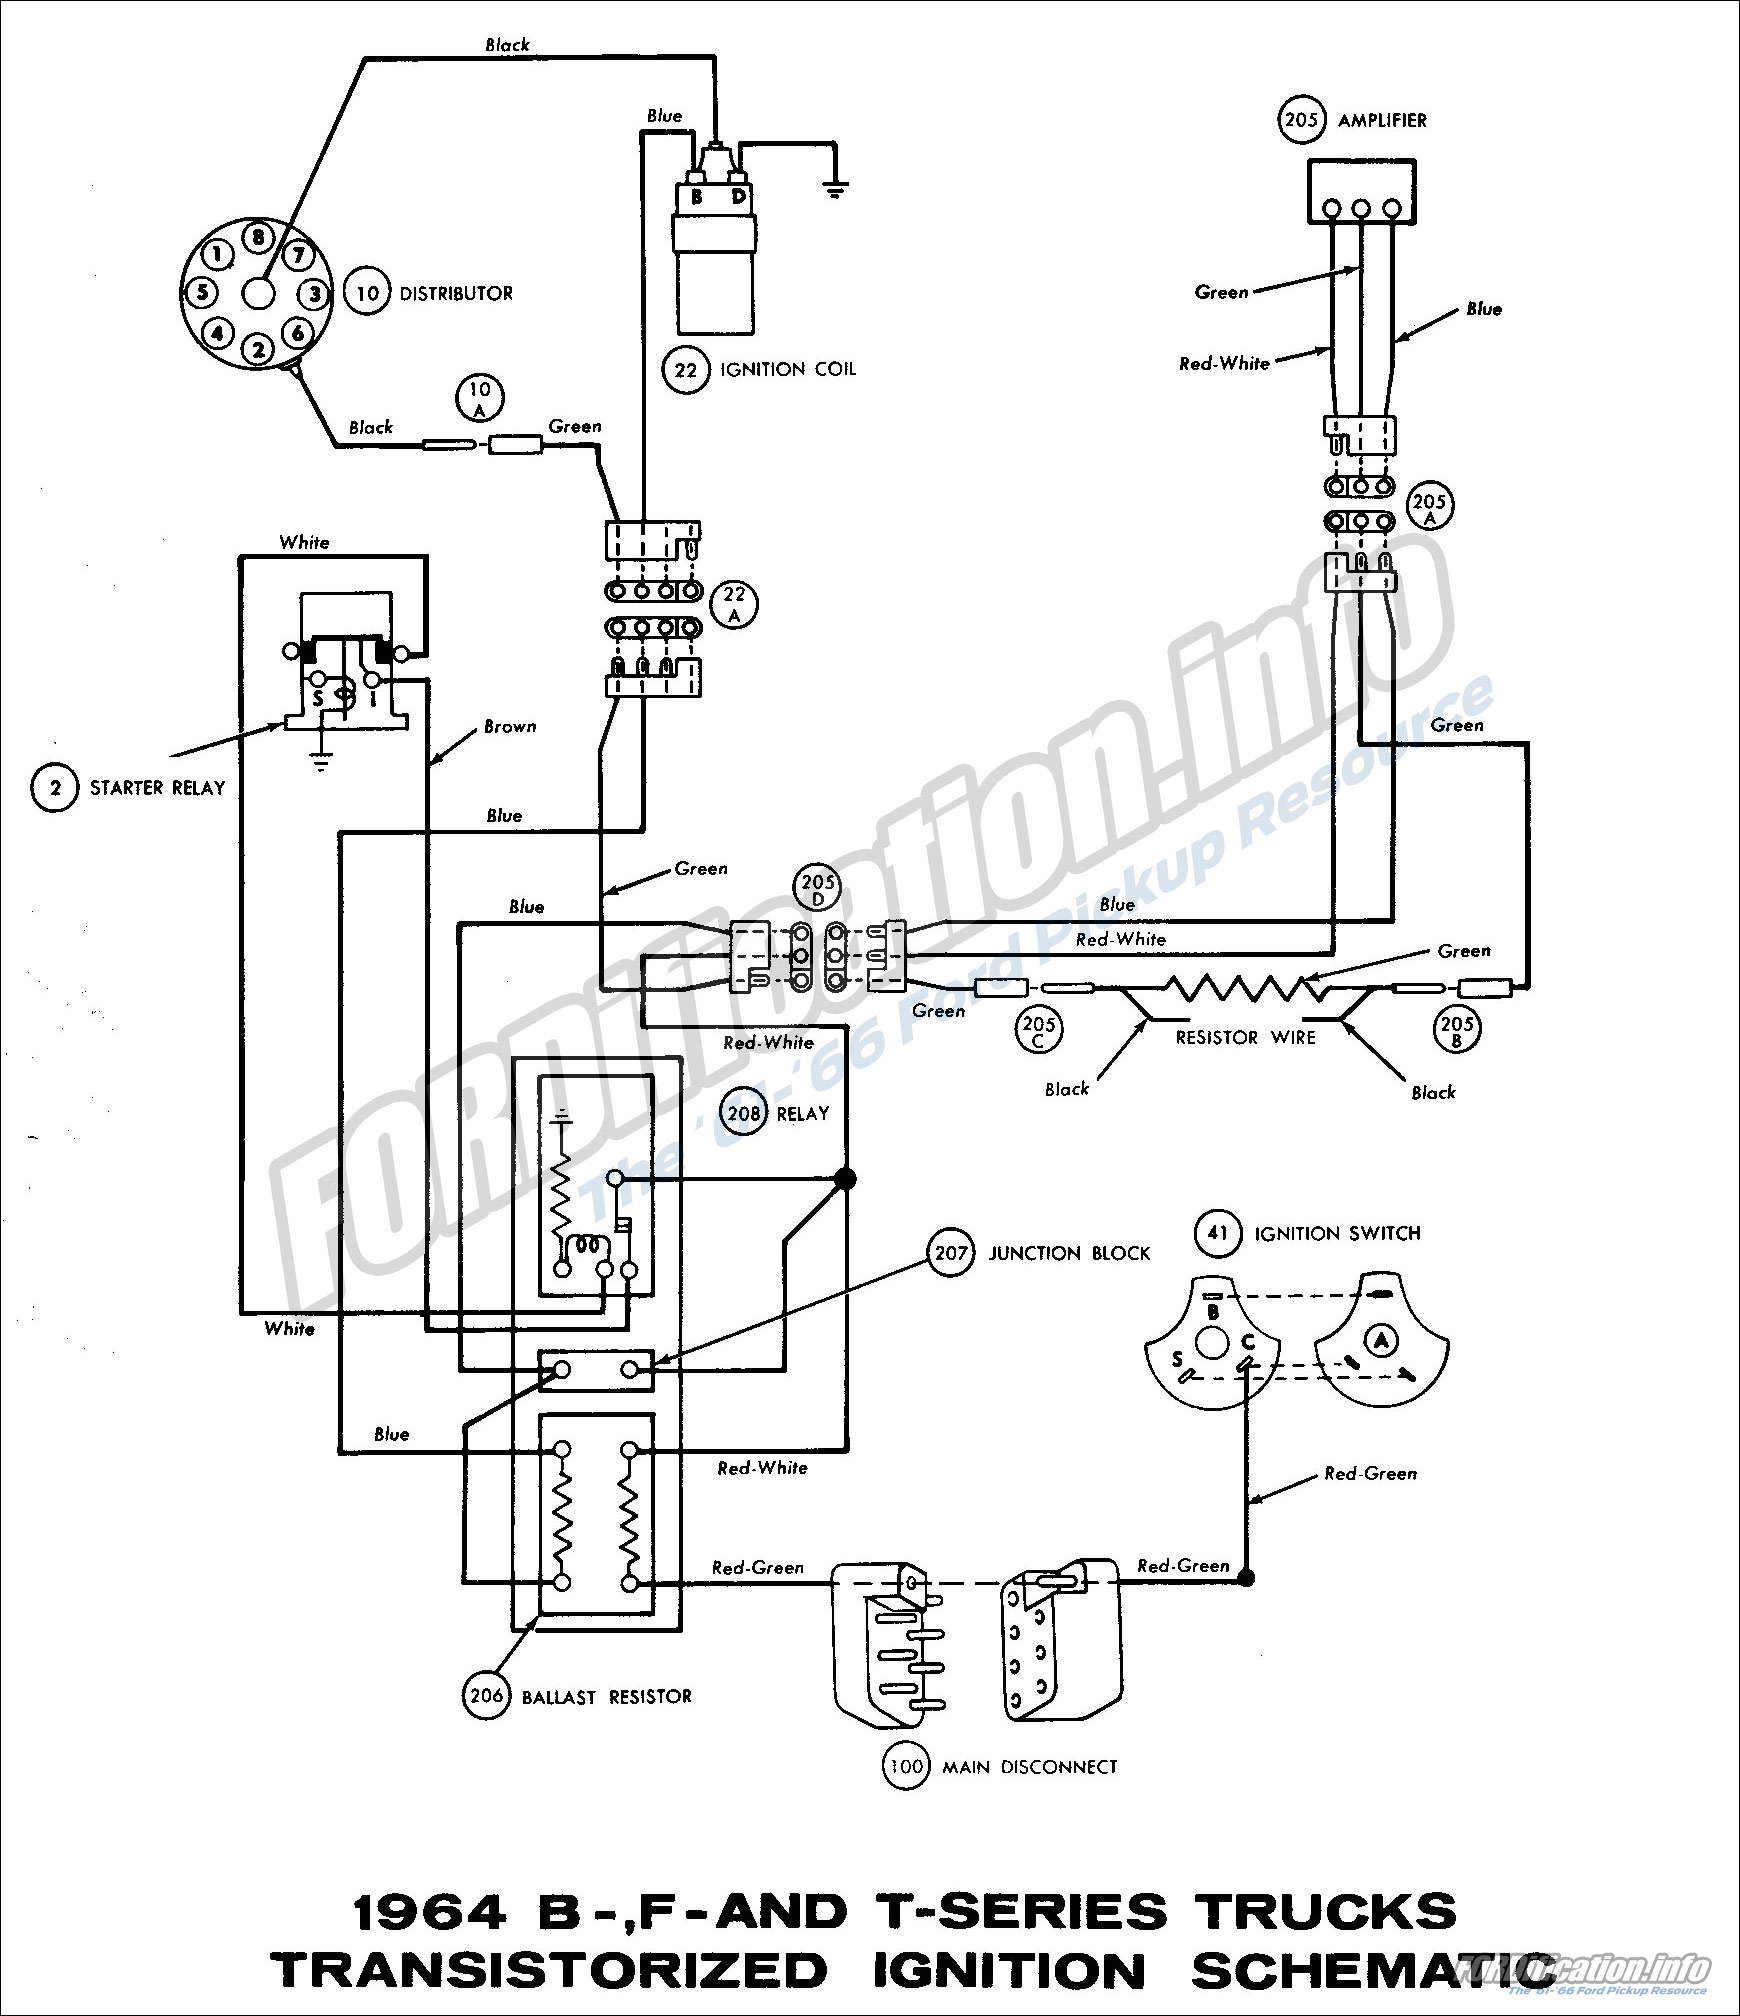 hight resolution of 1964 b f and t series trucks transistorized ignition schematic